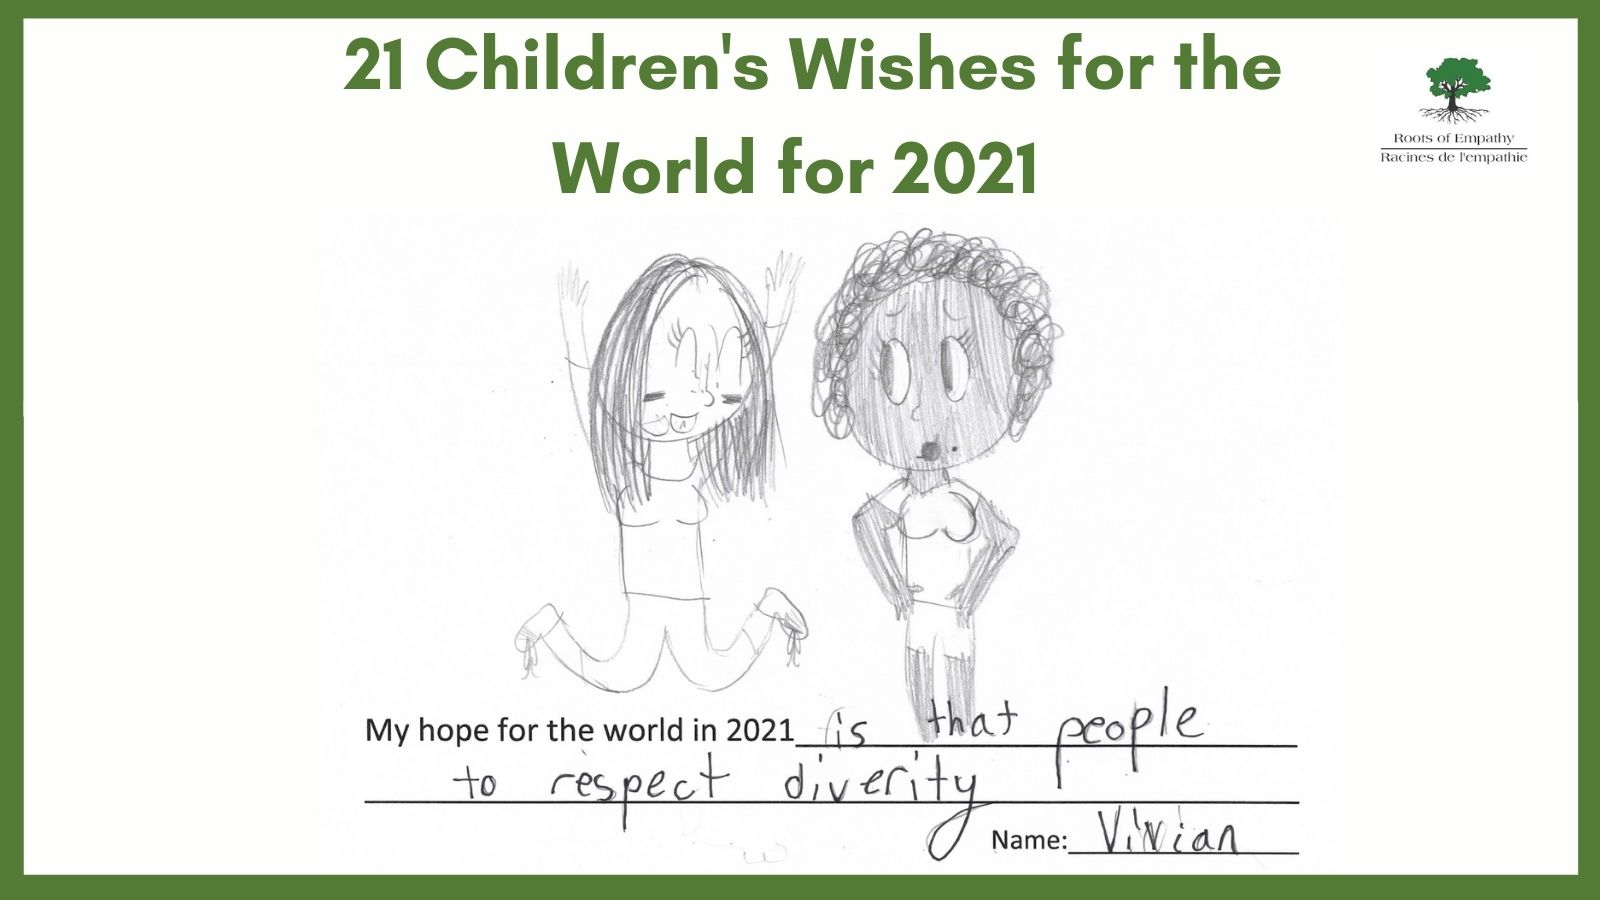 A drawing and letter by Vivian